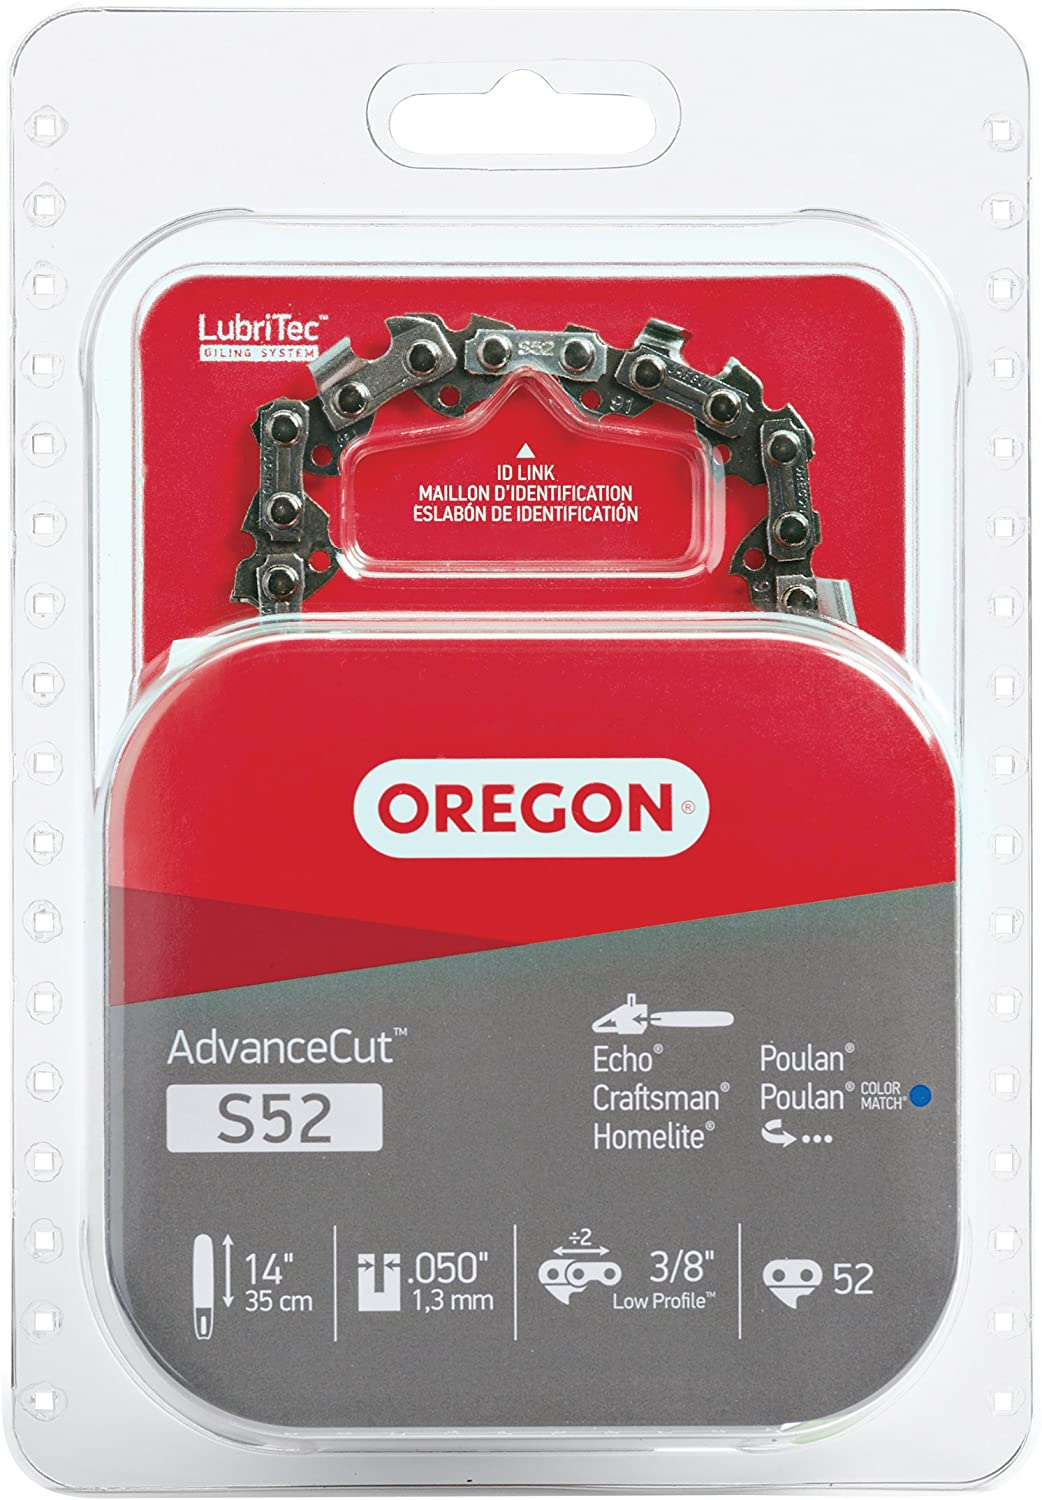 7. Oregon S52 Chainsaw Chain